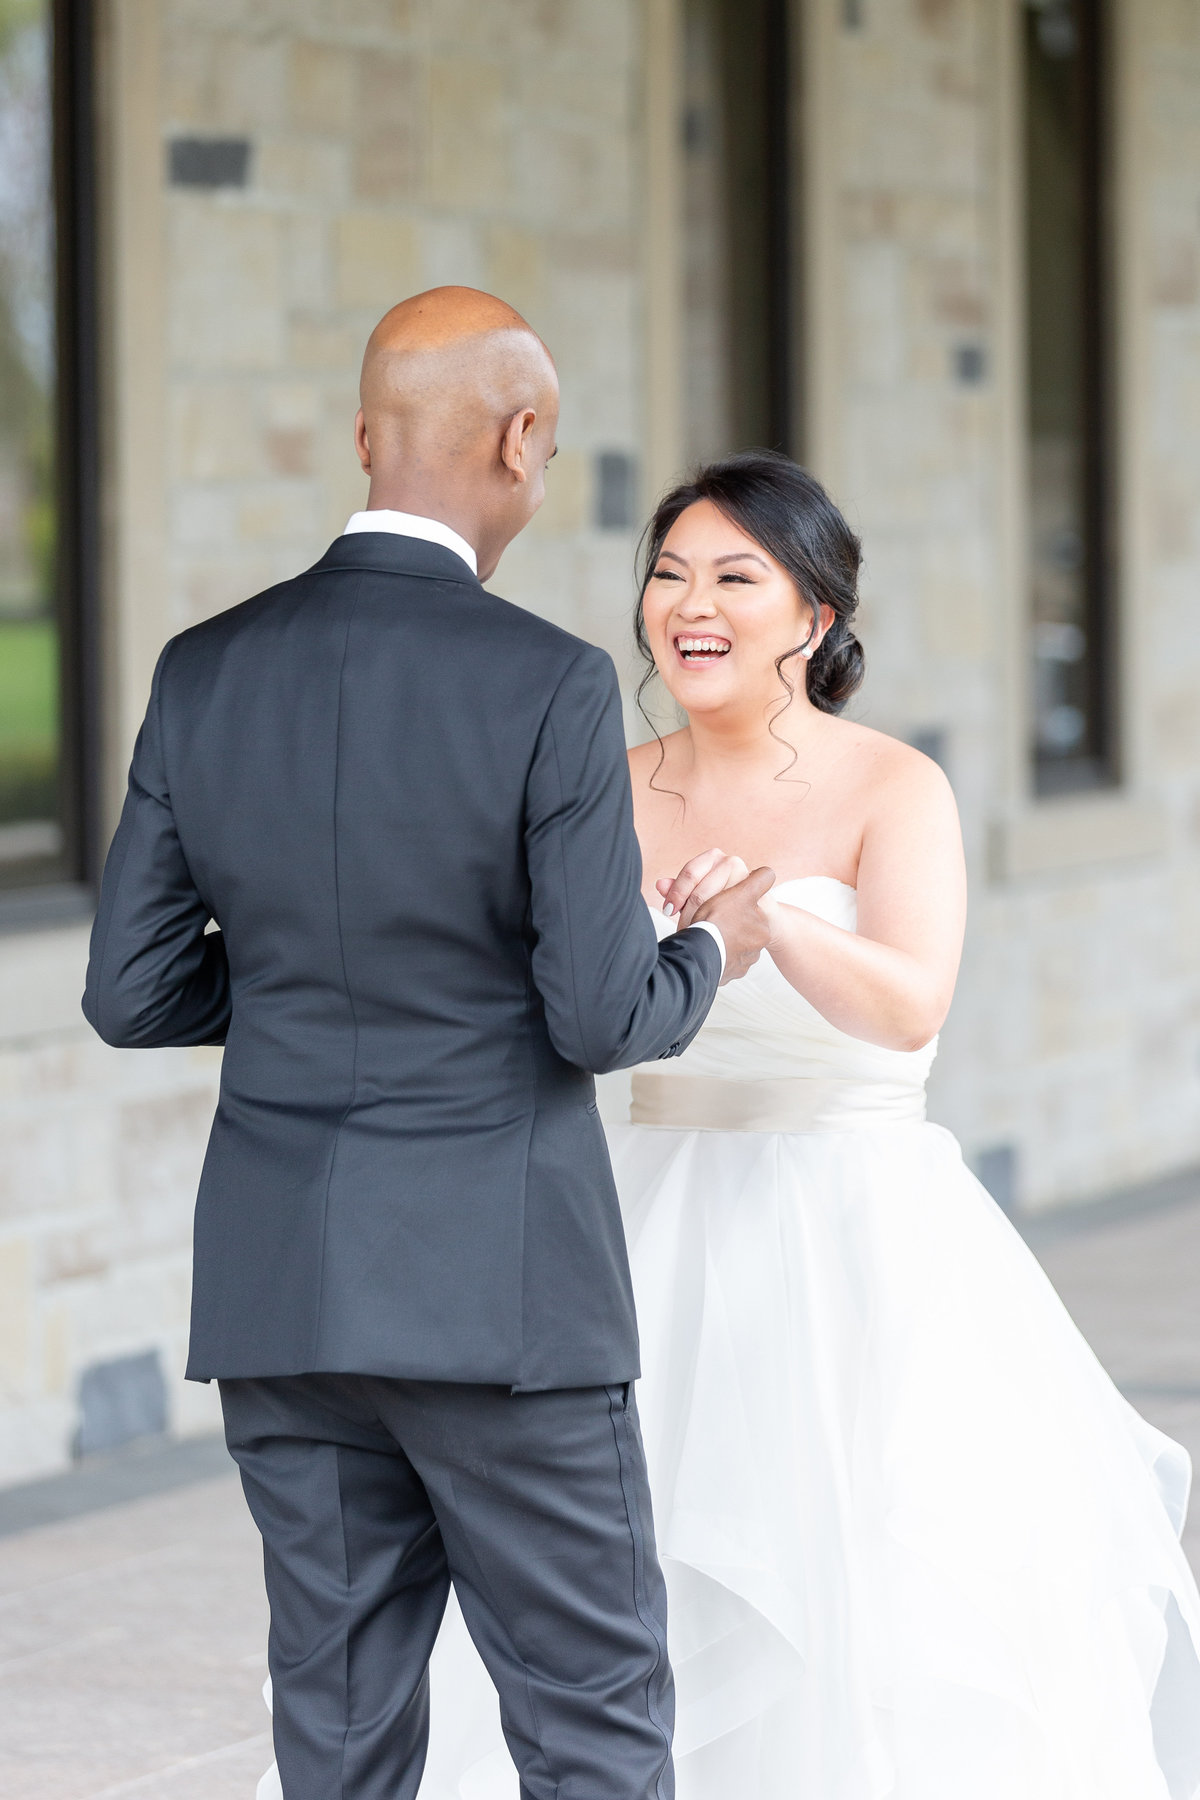 arlington-estae-Vicky-and-Emmanuel-Wedding-First-Look-Chris-and-Micaela-Photography-46